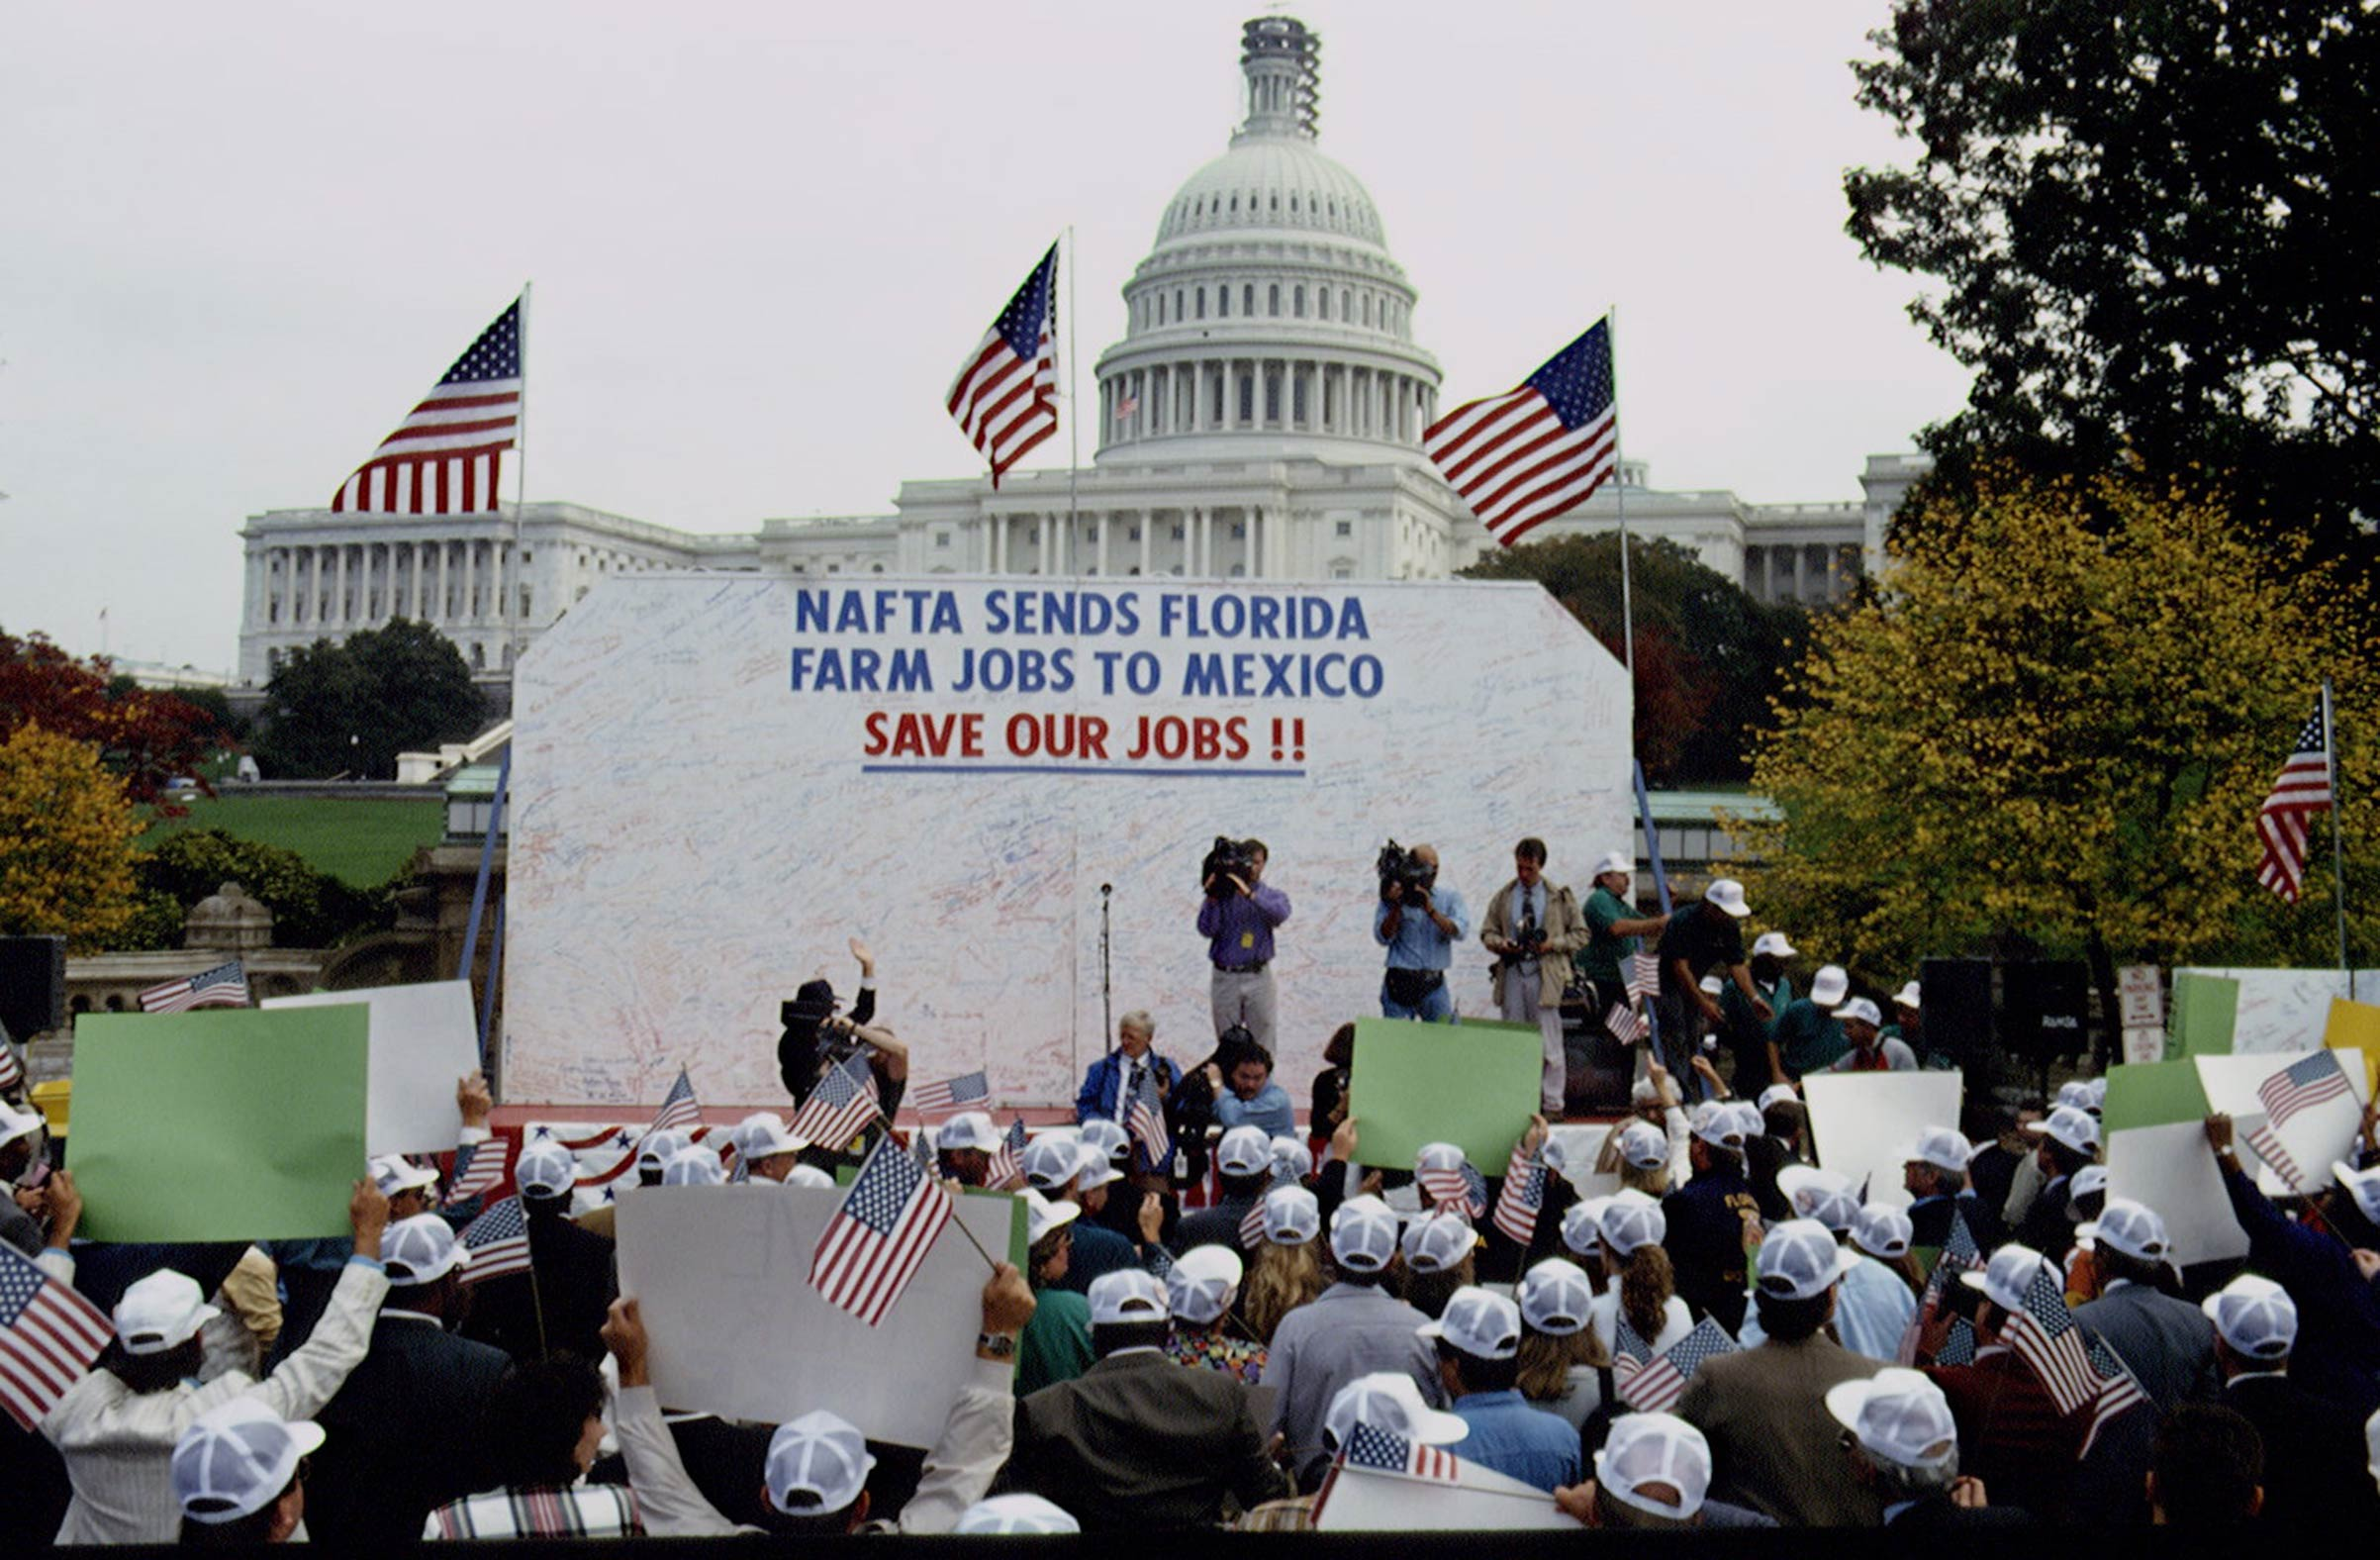 A farmer protest against NAFTA on Oct. 21, 1993, in front of the Capitol in Washington, D.C.